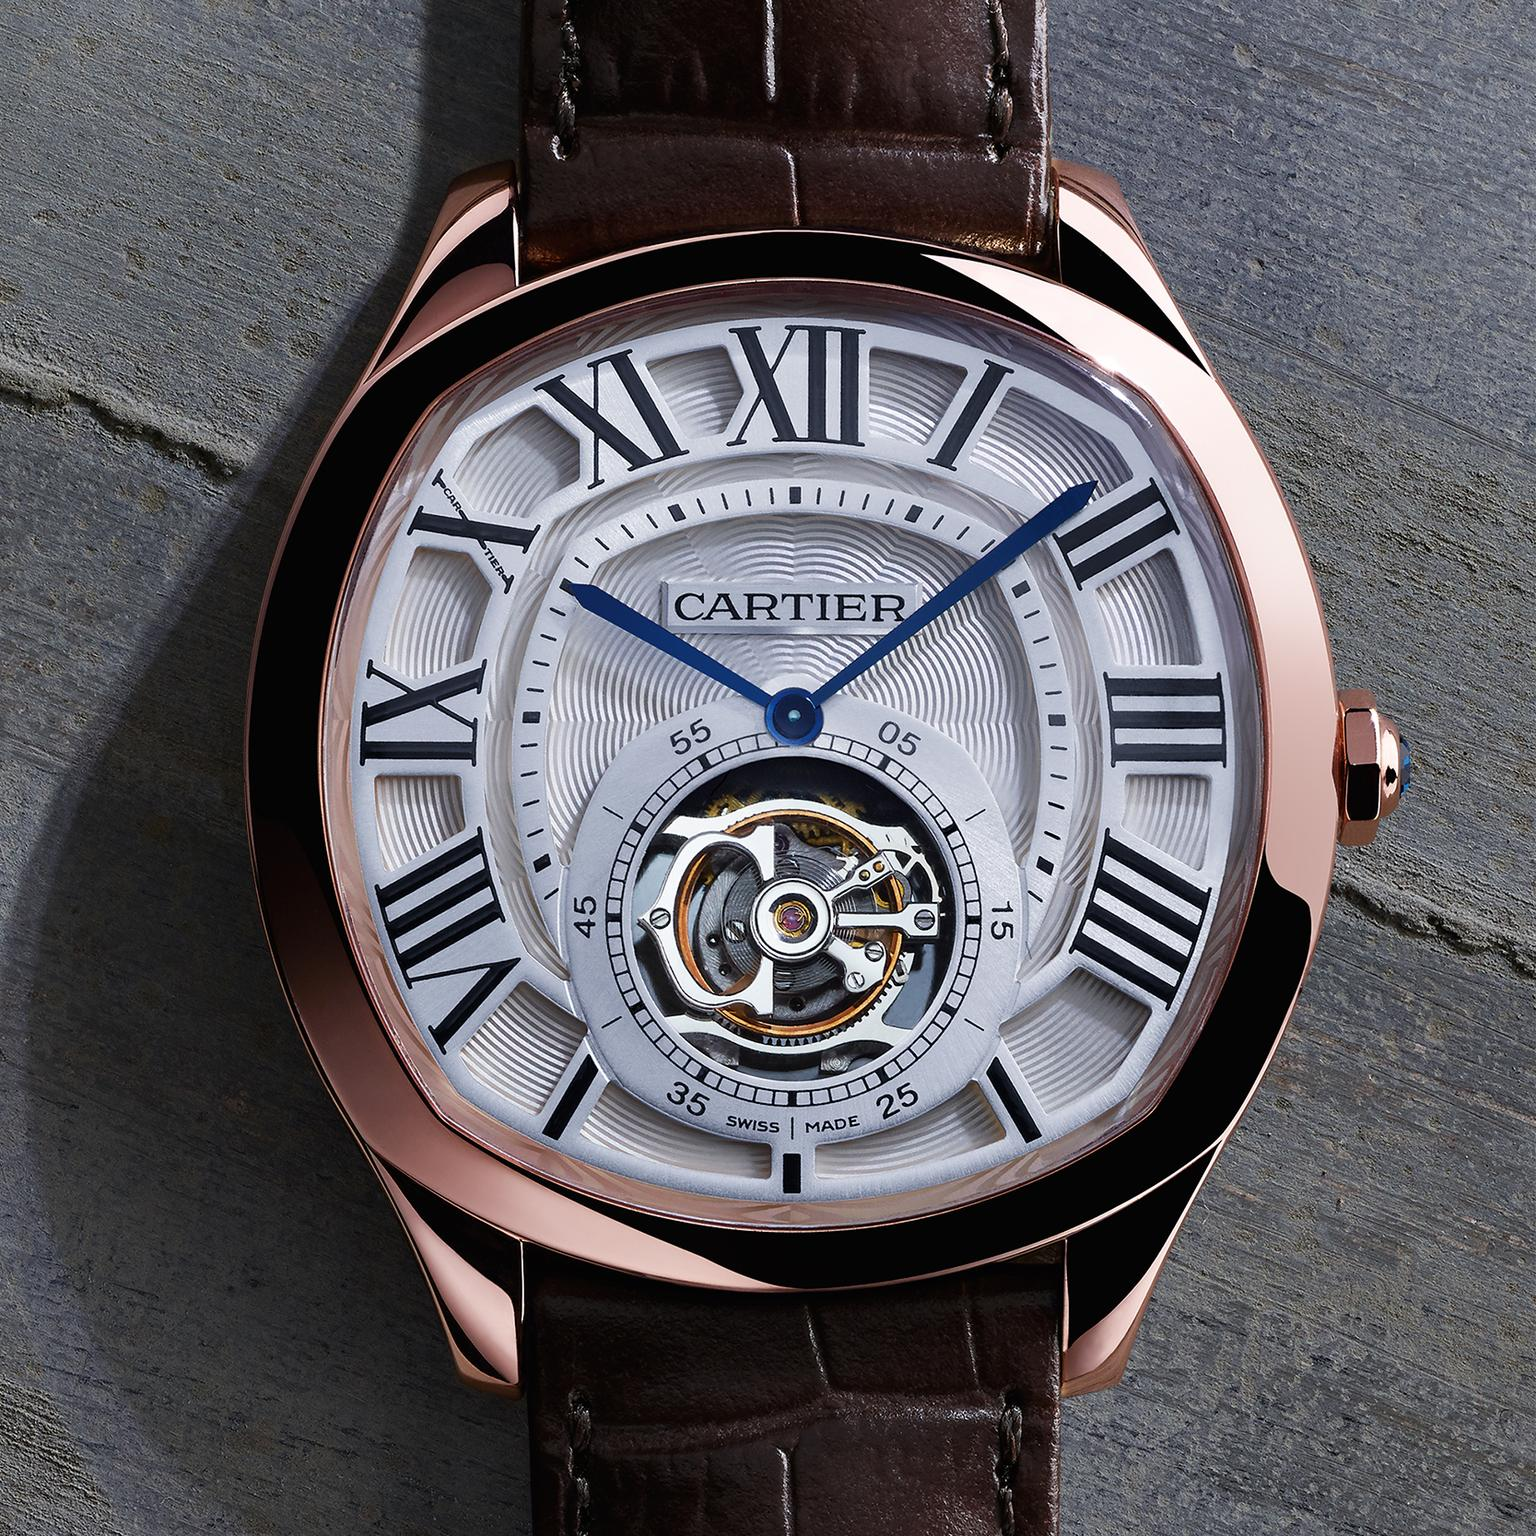 Cartier Watches Drive De Cartier Tourbillon Watch In Rose Gold